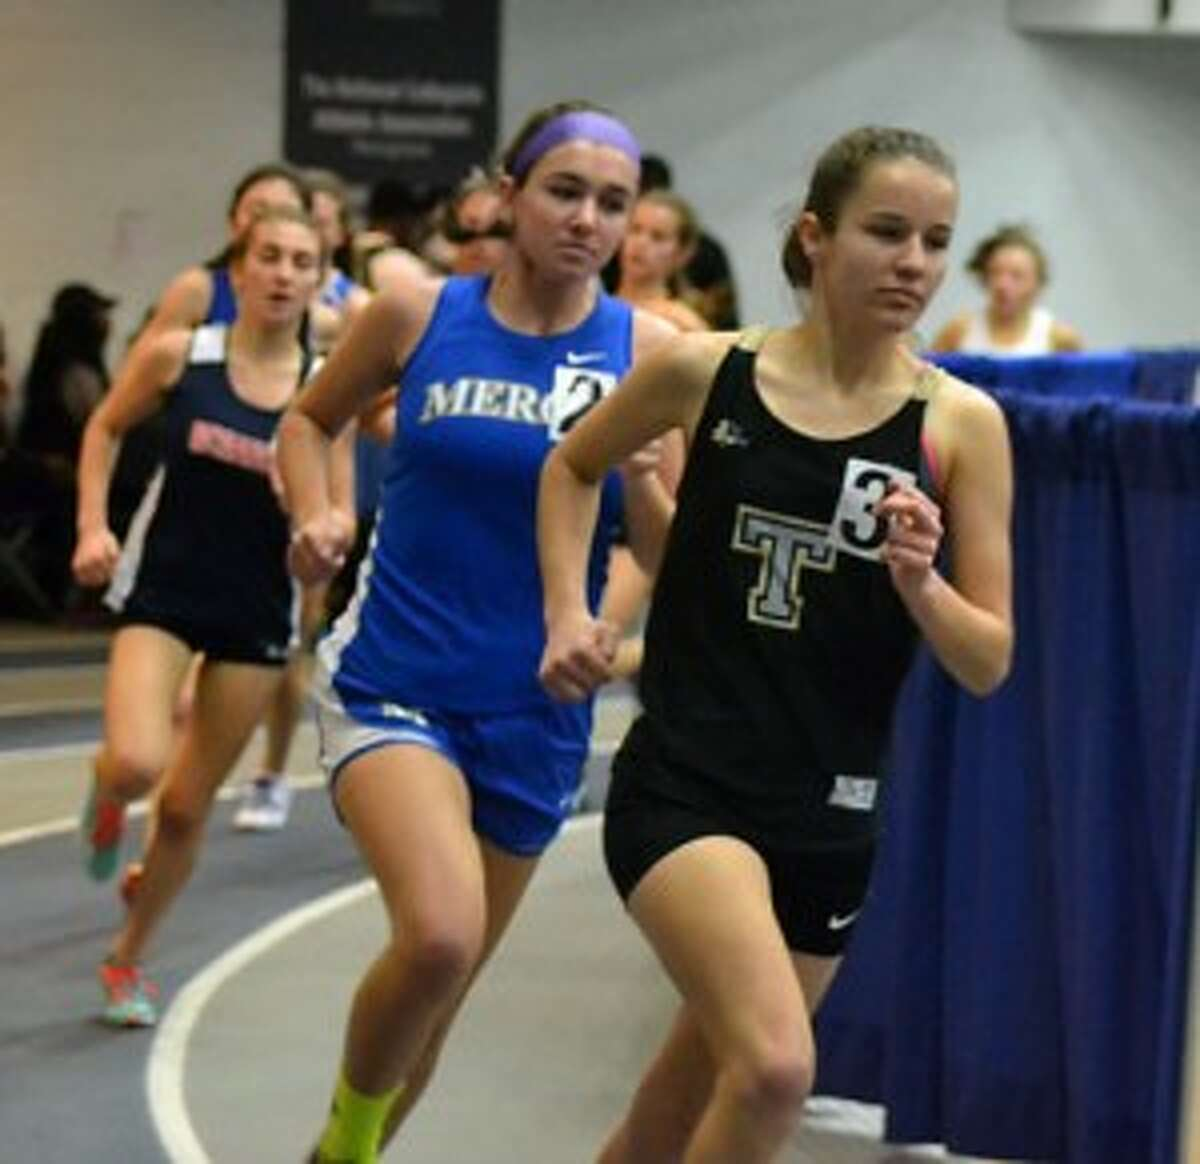 Kate Romanchick leads the way in the 3000 meter run at the Wintergreen Invitational.